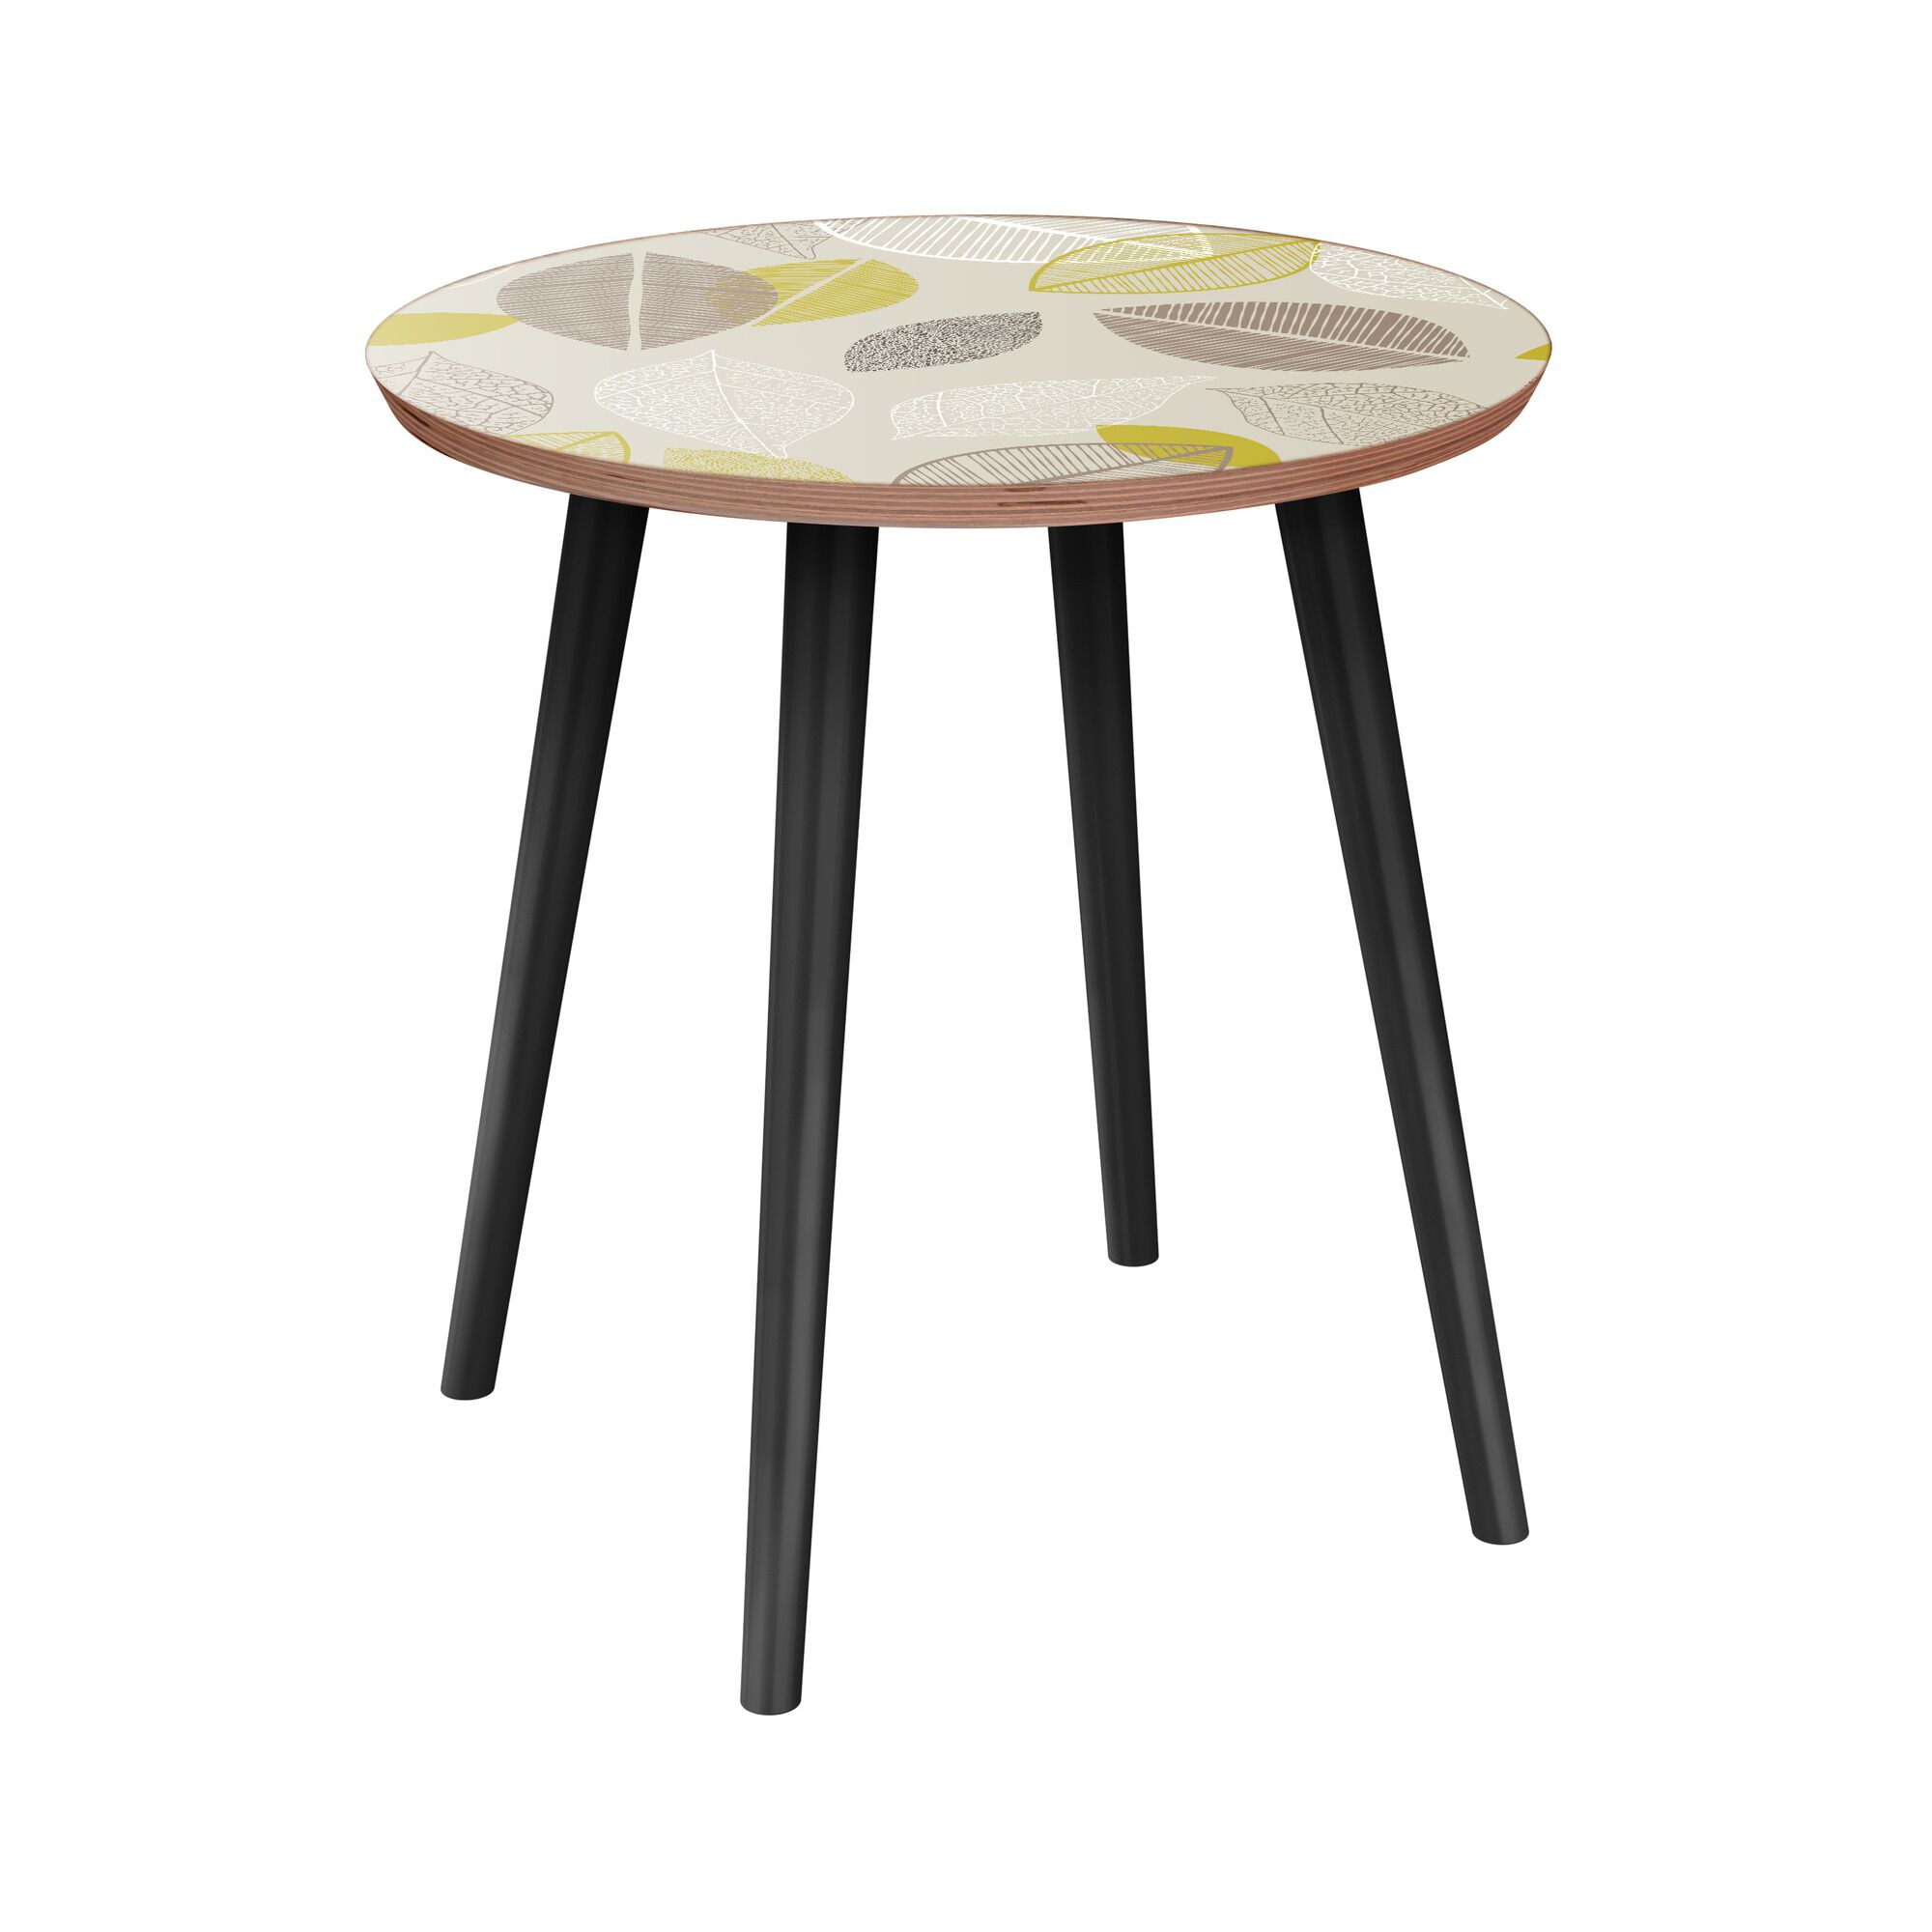 June End Table Table Base Color: Black, Table Top Boarder Color: Walnut, Table Top Color: Blue